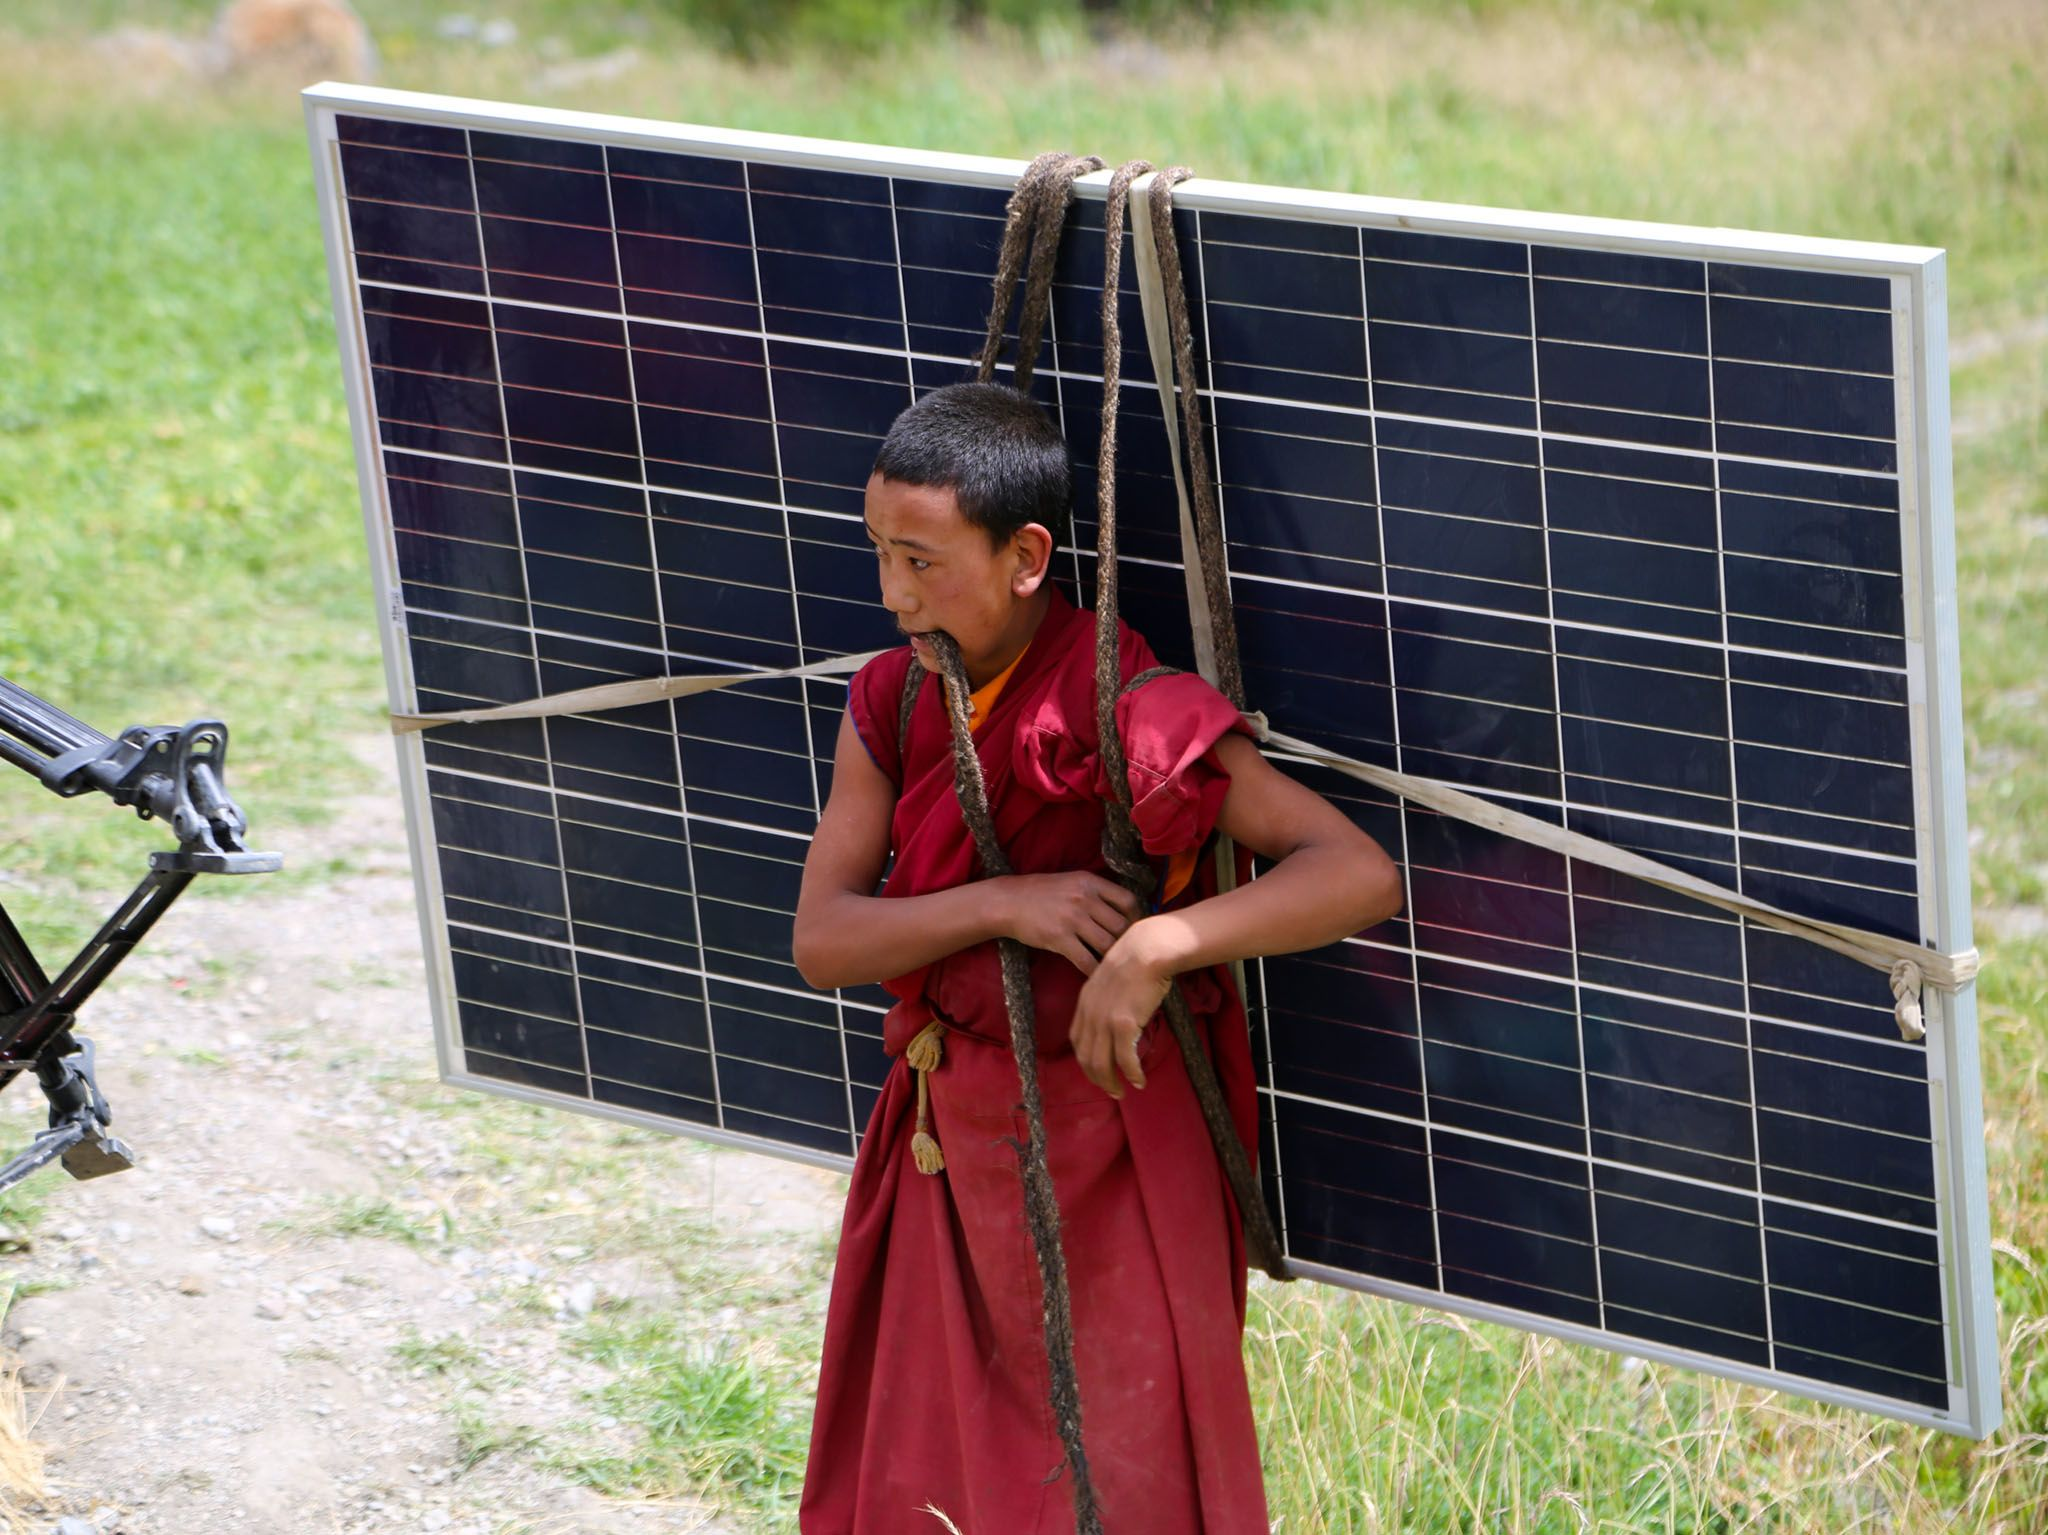 Lingshed, India: Local villager transporting solar panels through the mountainside. This image... [Photo of the day - April 2017]